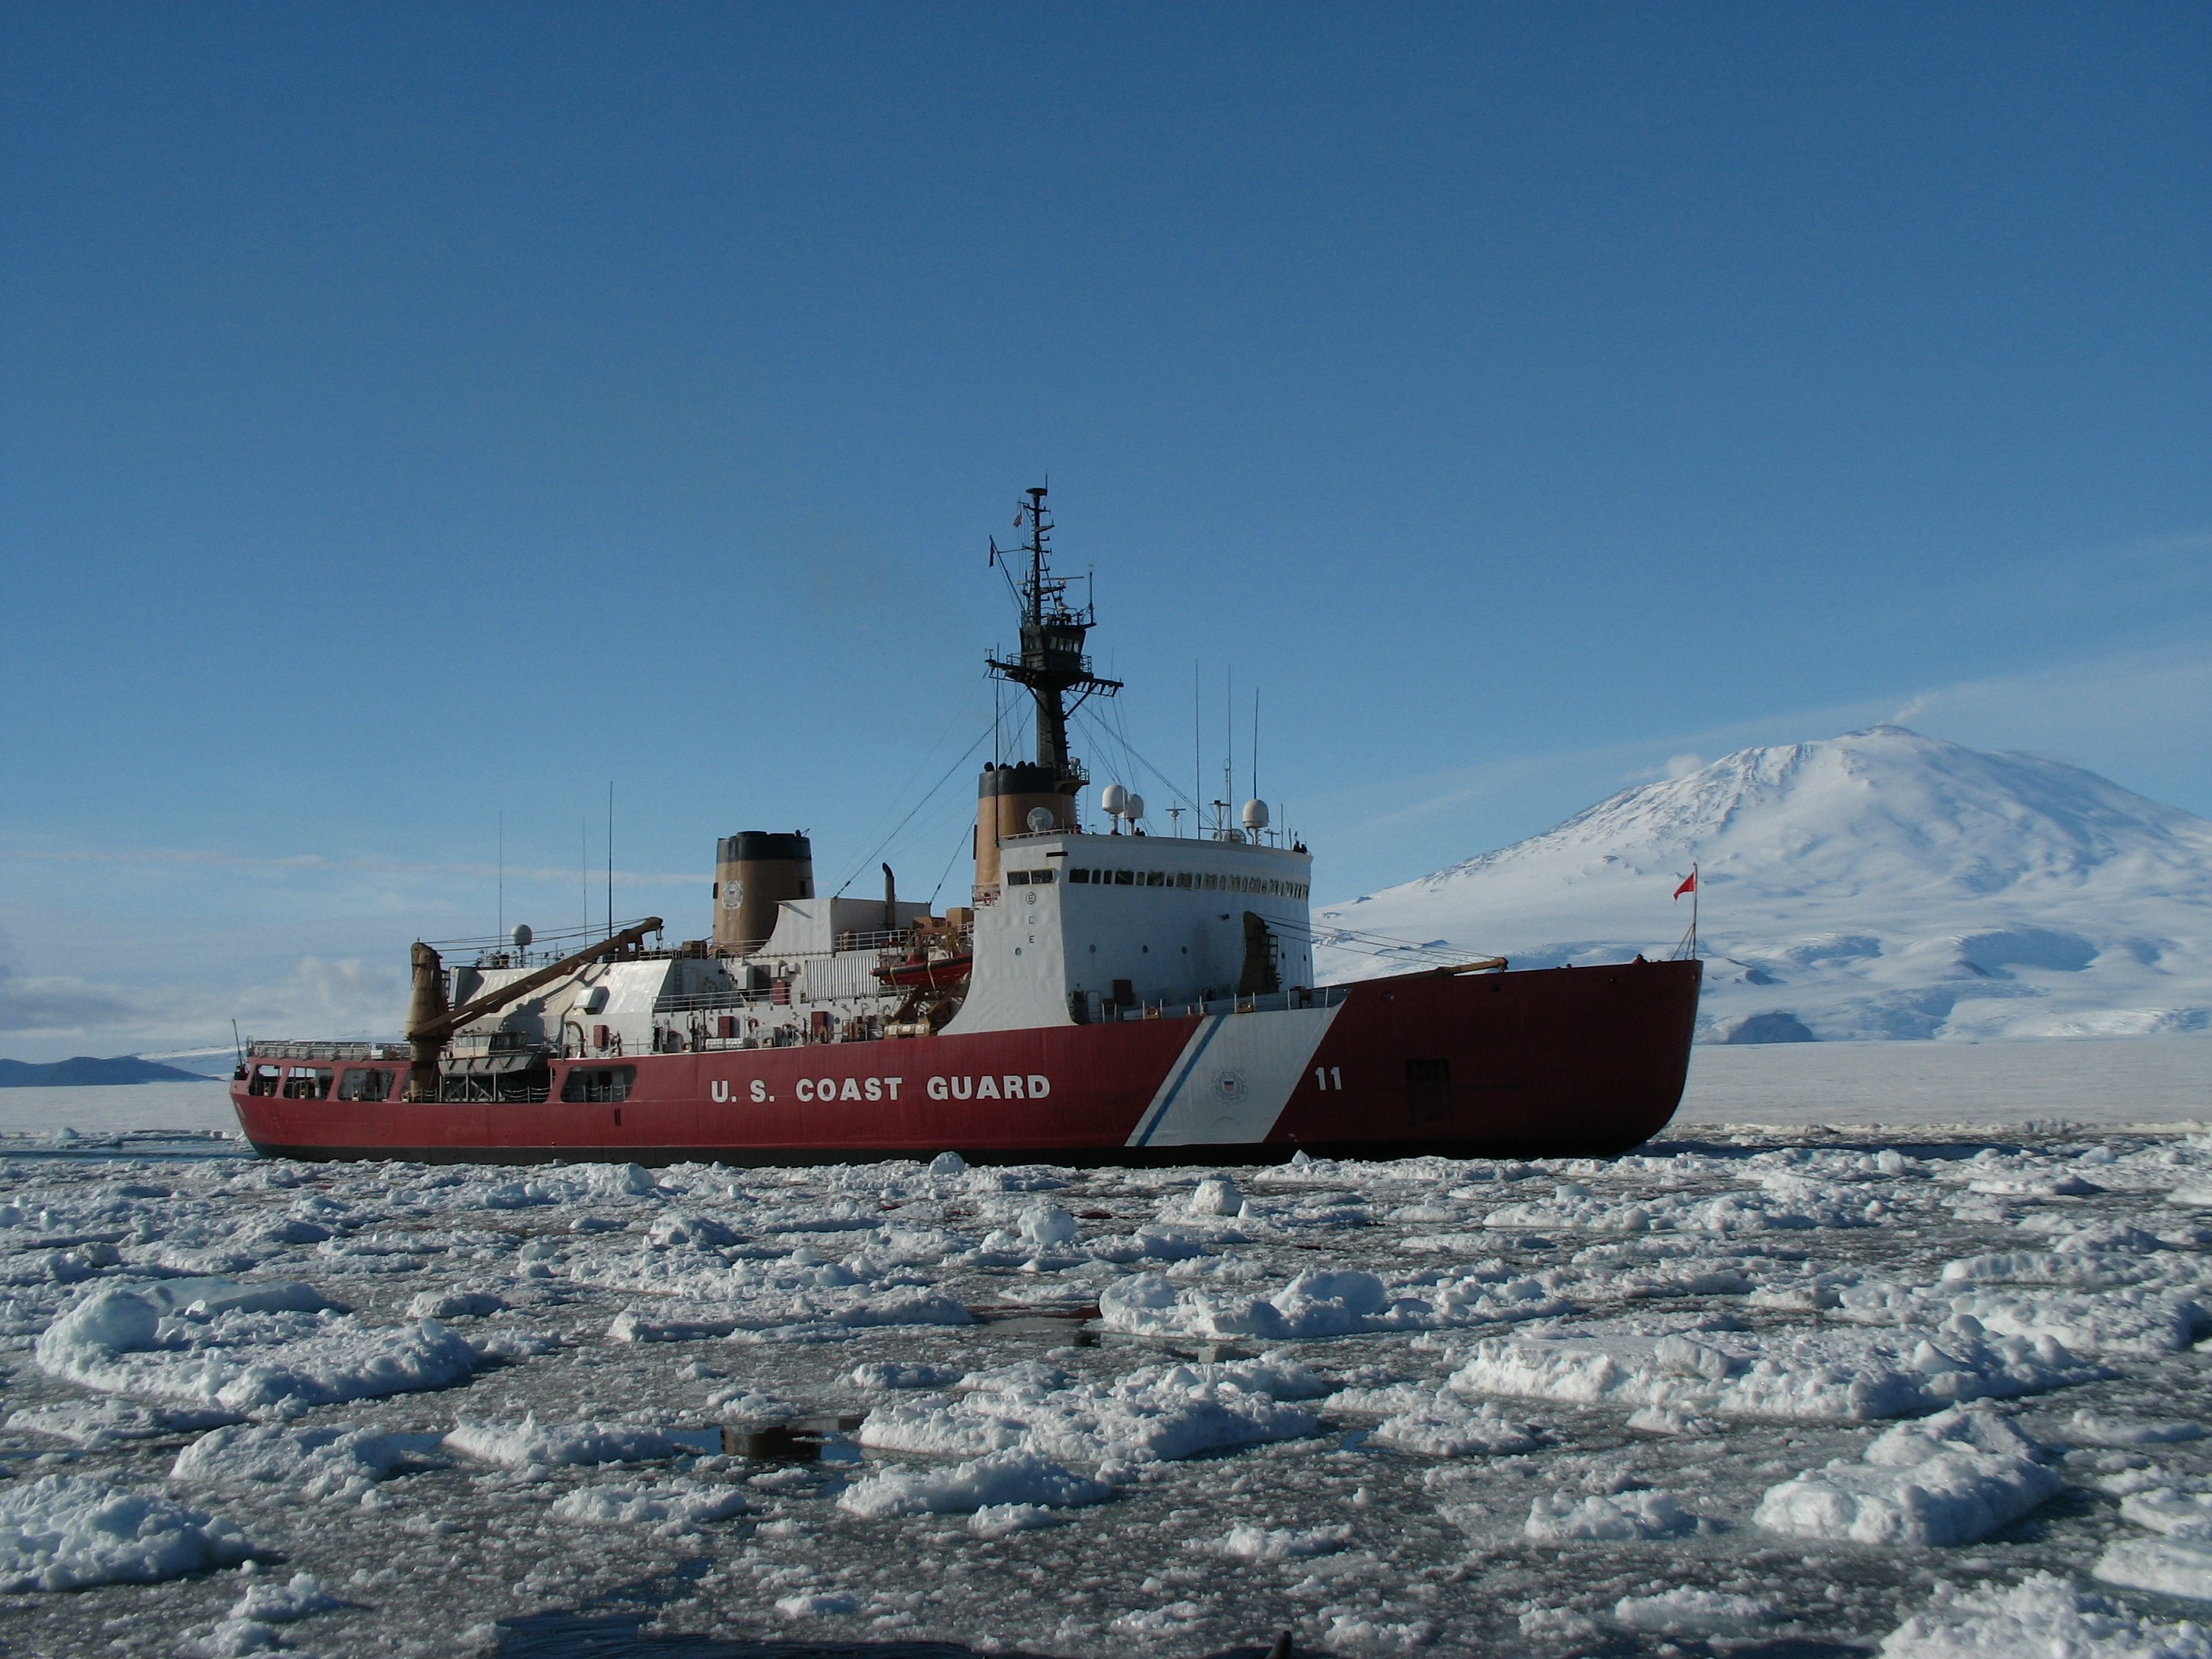 U.S. Coast Guard Cutter Polar Sea